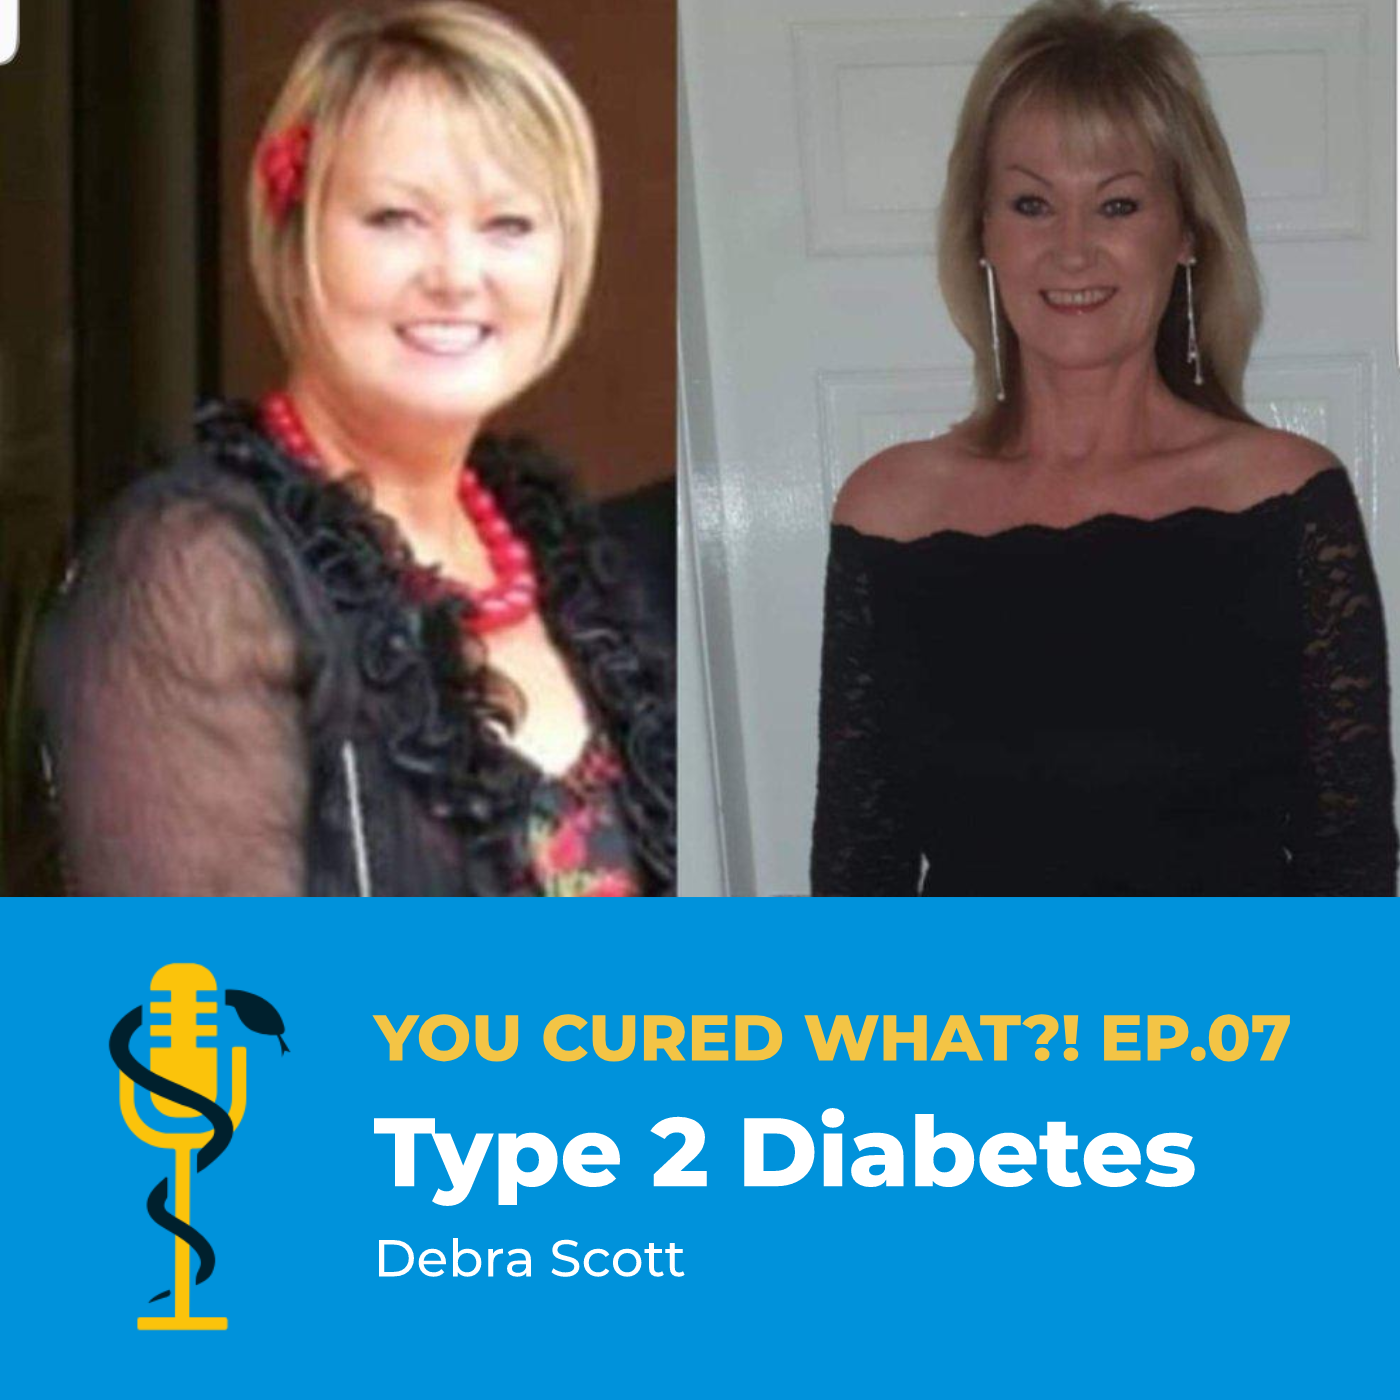 Ep.07: Type 2 Diabetes with Debra Scott